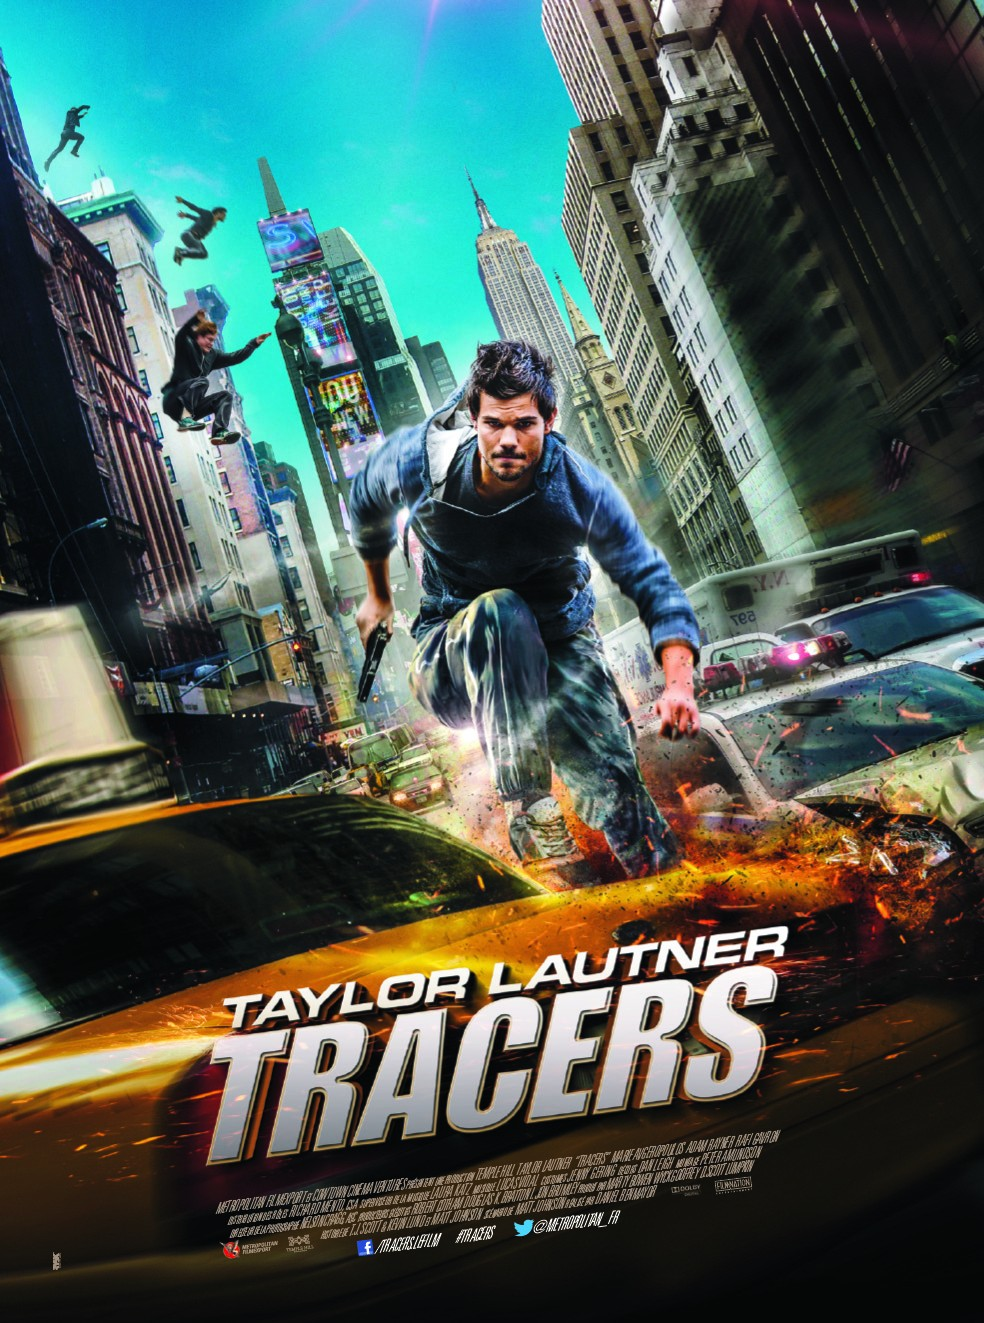 TRACERS-Official Poster XXLG-11DEZEMBRO2014